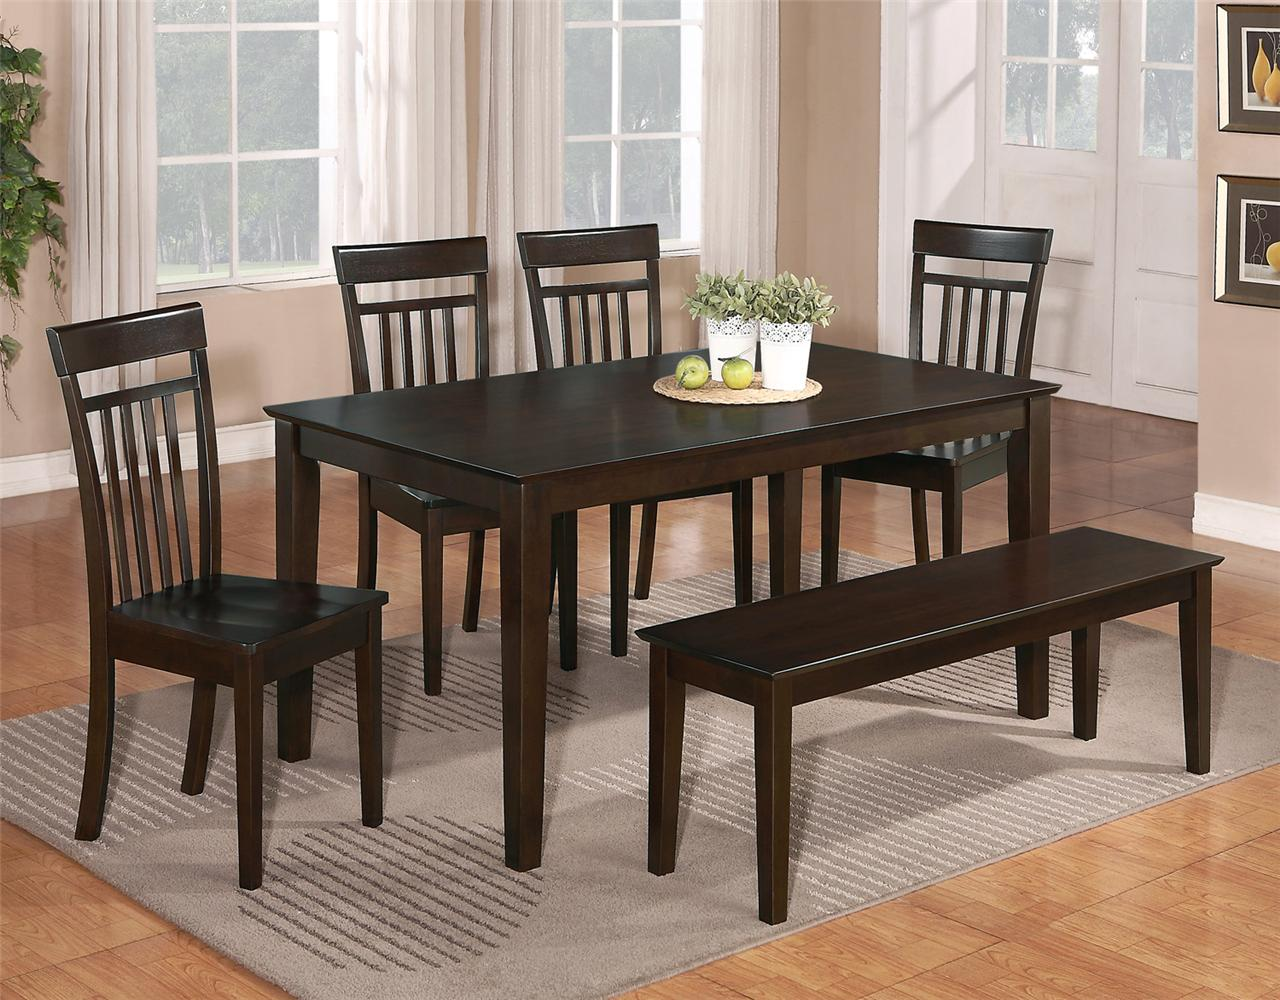 6 pc dinette kitchen dining room set table w 4 wood chair for Kitchen dining room furniture